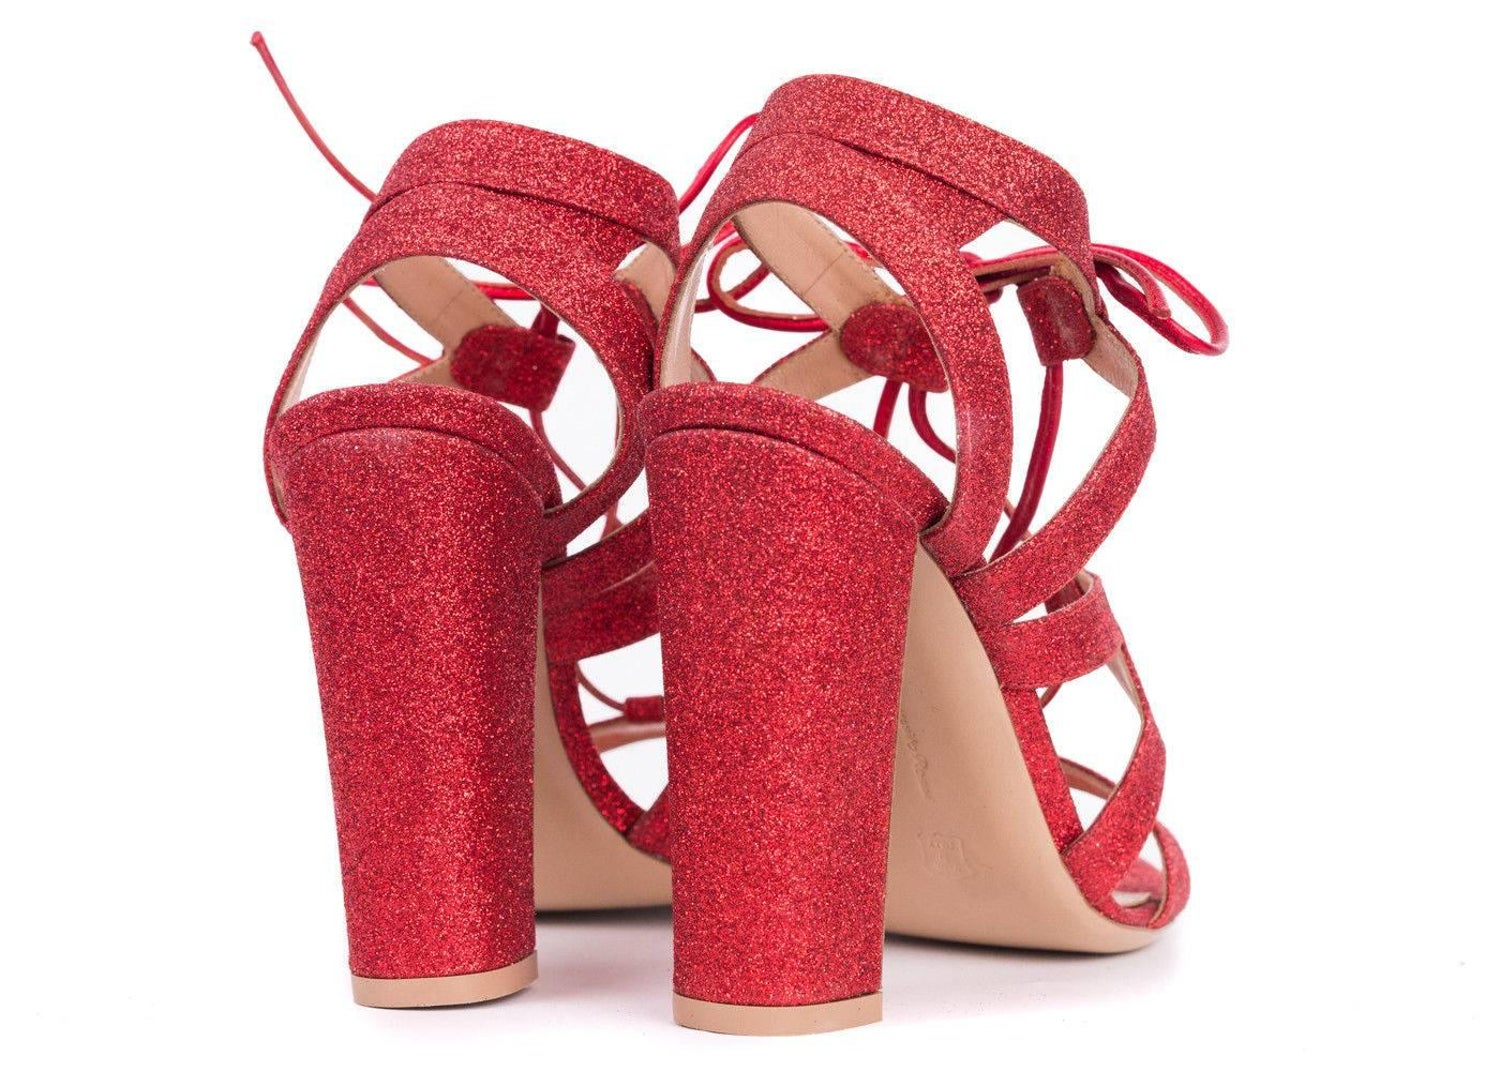 380fdb3db75 Gianvito Rossi Red Glitter Caged Lace Up Sandal Heels For Sale at 1stdibs